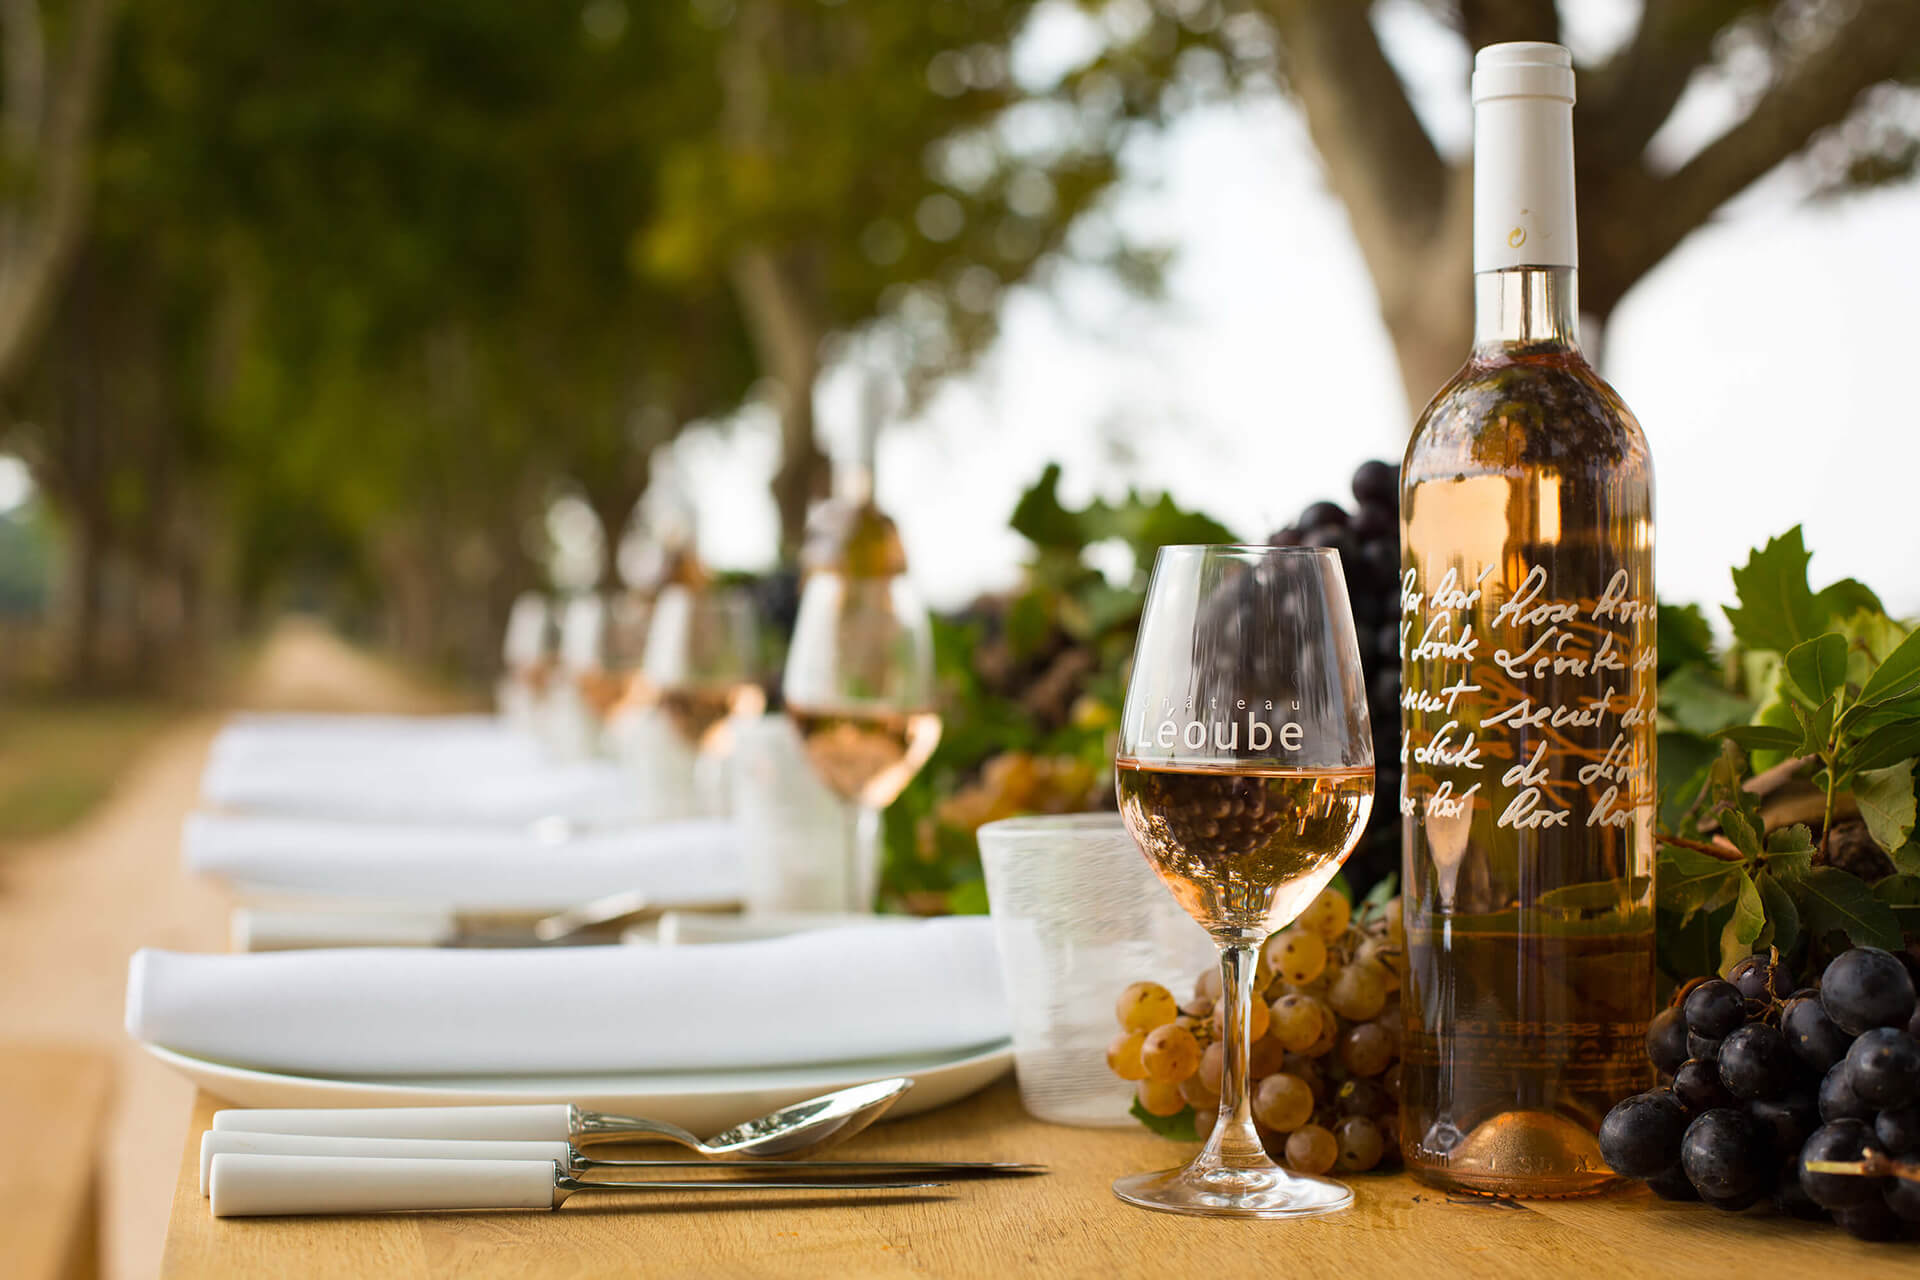 Chateau Leoube, Rose, Wine, South of France, Organic, Depth of Field